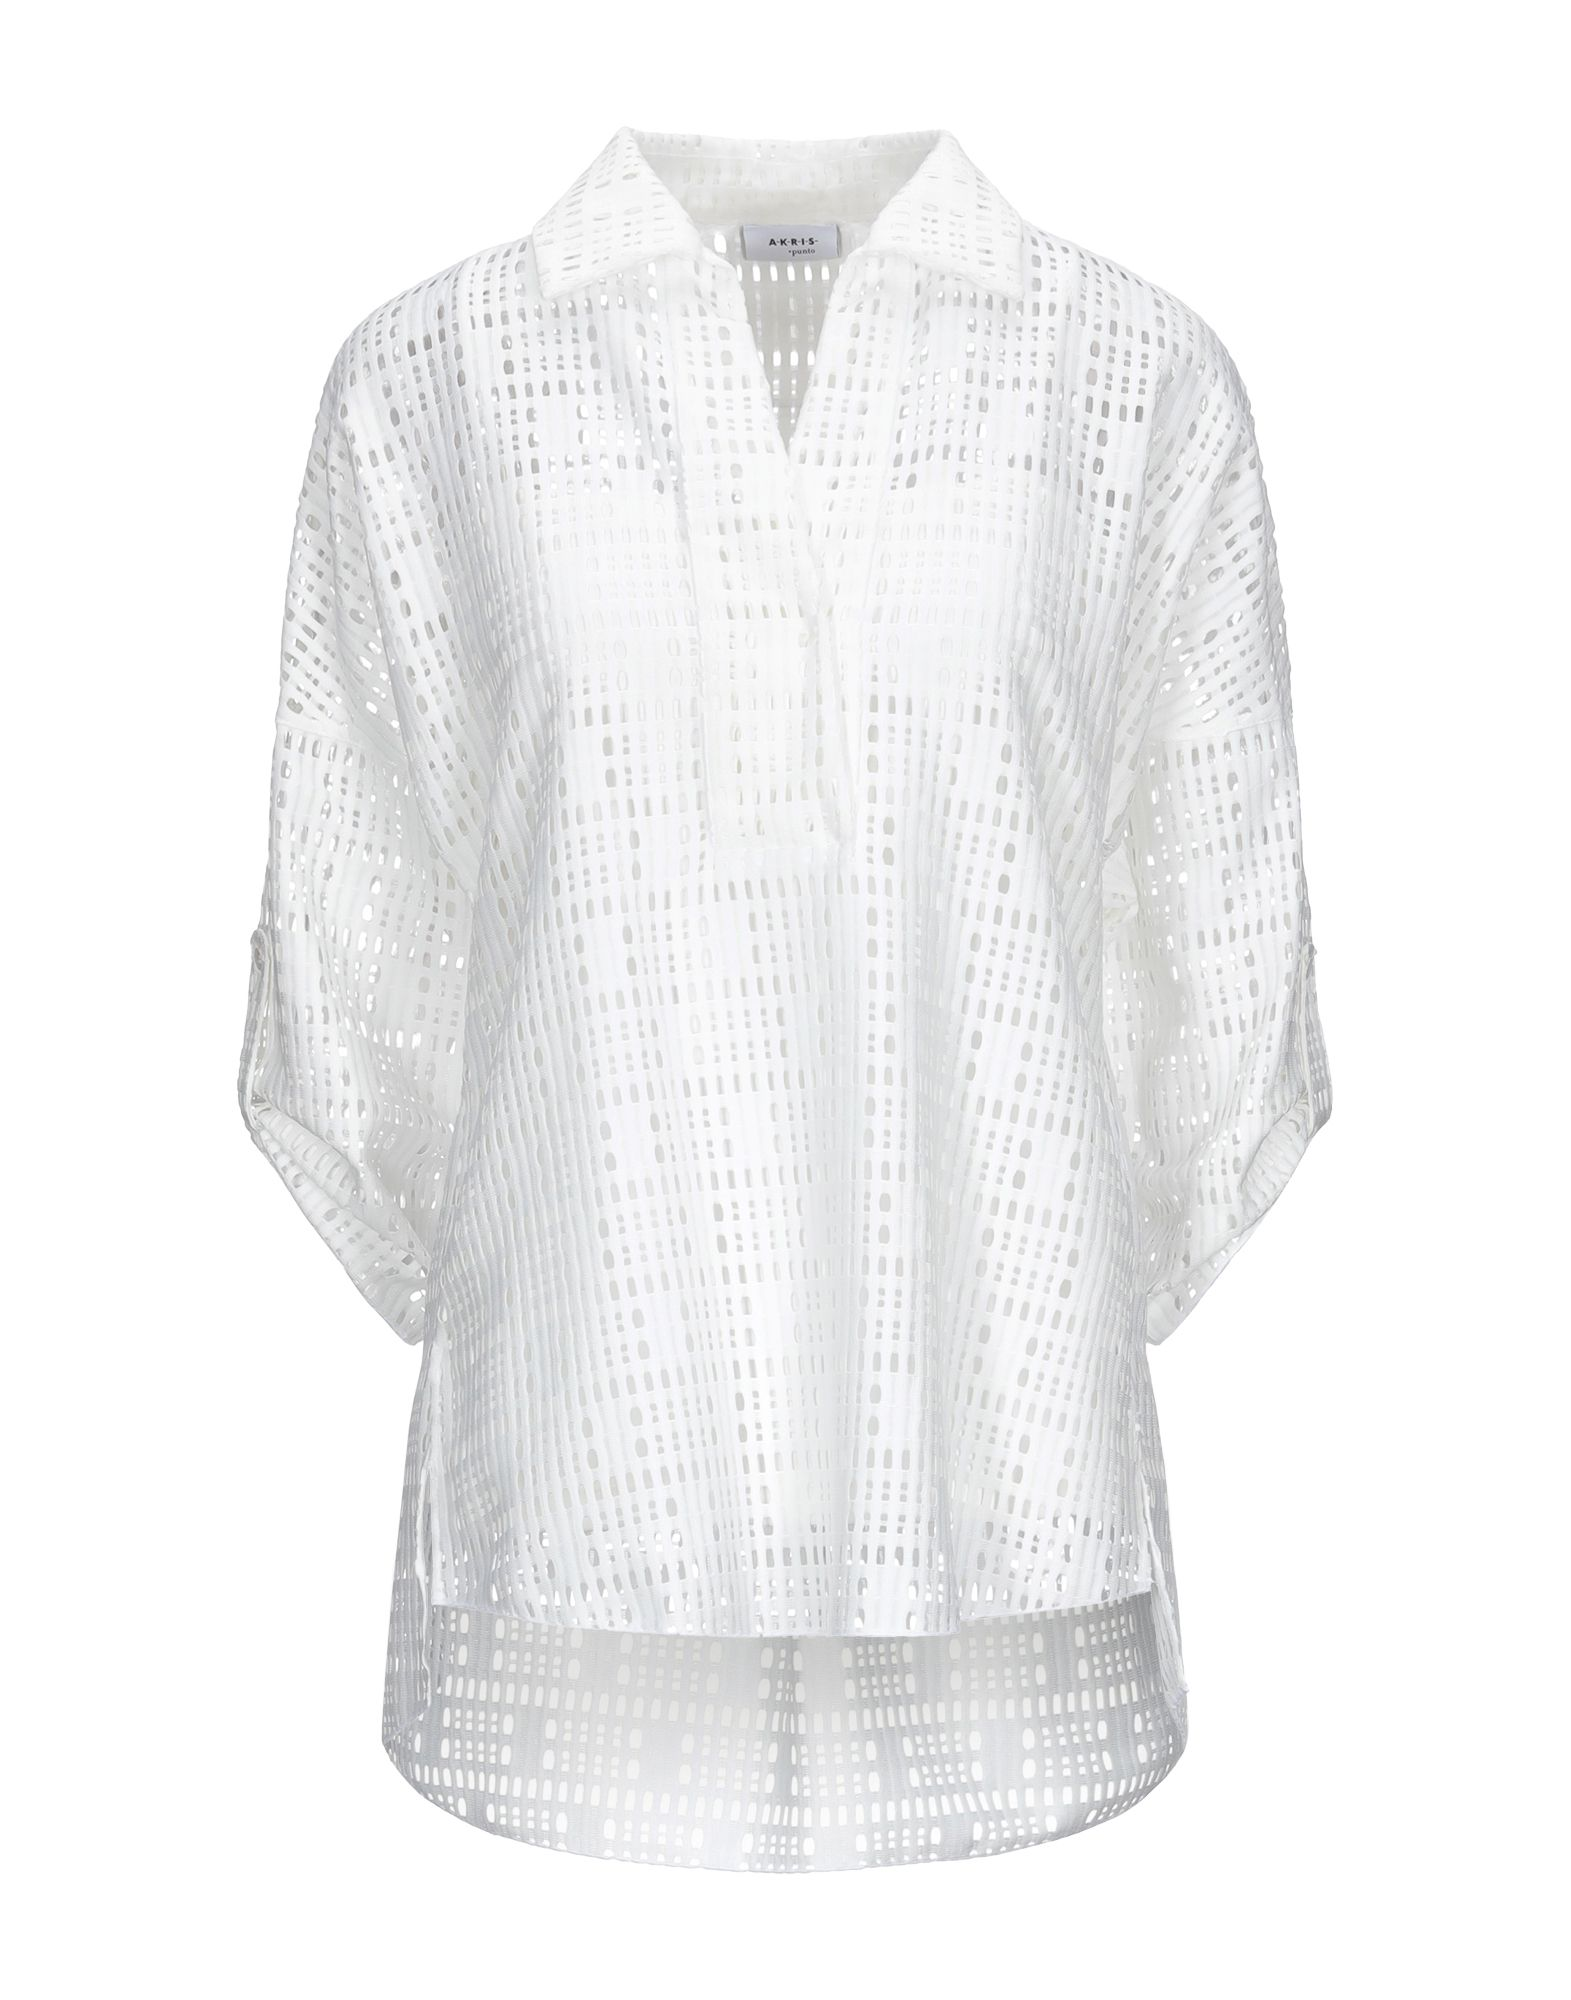 AKRIS PUNTO Blouses. jersey, no appliqués, basic solid color, front closure, snap buttons fastening, long sleeves, classic neckline, no pockets, detachable lining. 100% Polyester